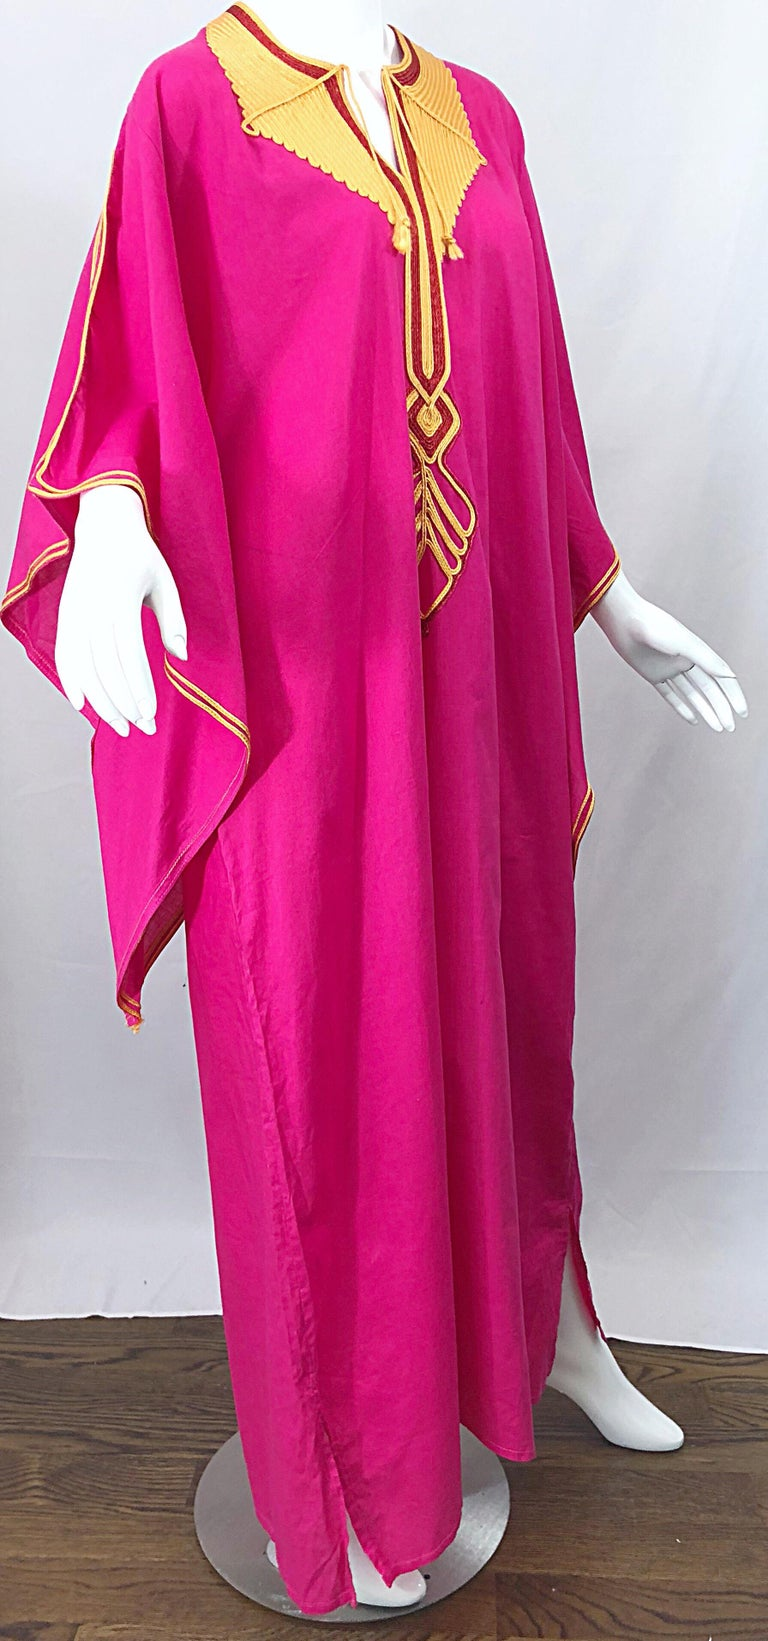 Amazing 1970s Hot Pink + Yellow Angel Sleeve Vintage 70s Kaftan Maxi Dress For Sale 4